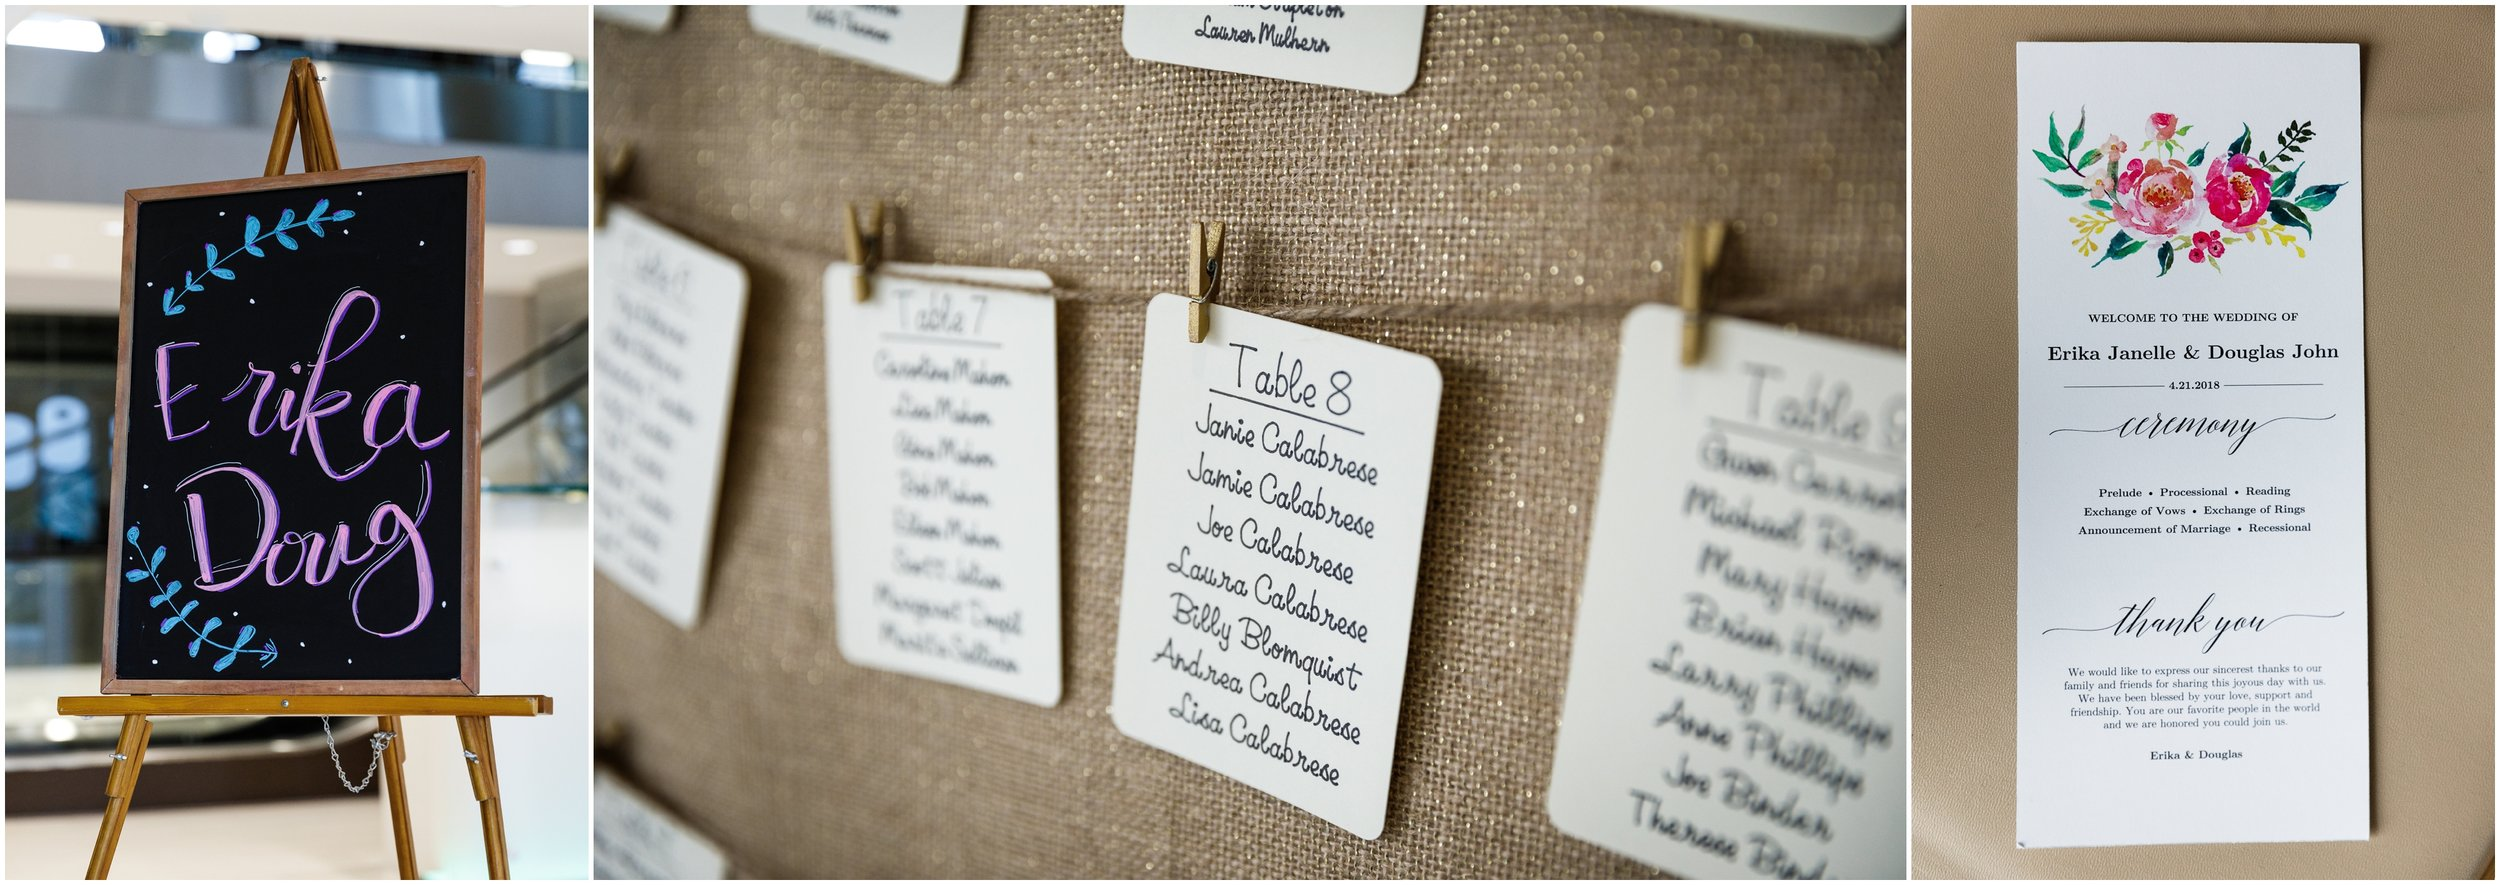 ceremony sign at Greenhouse Loft in Chicago